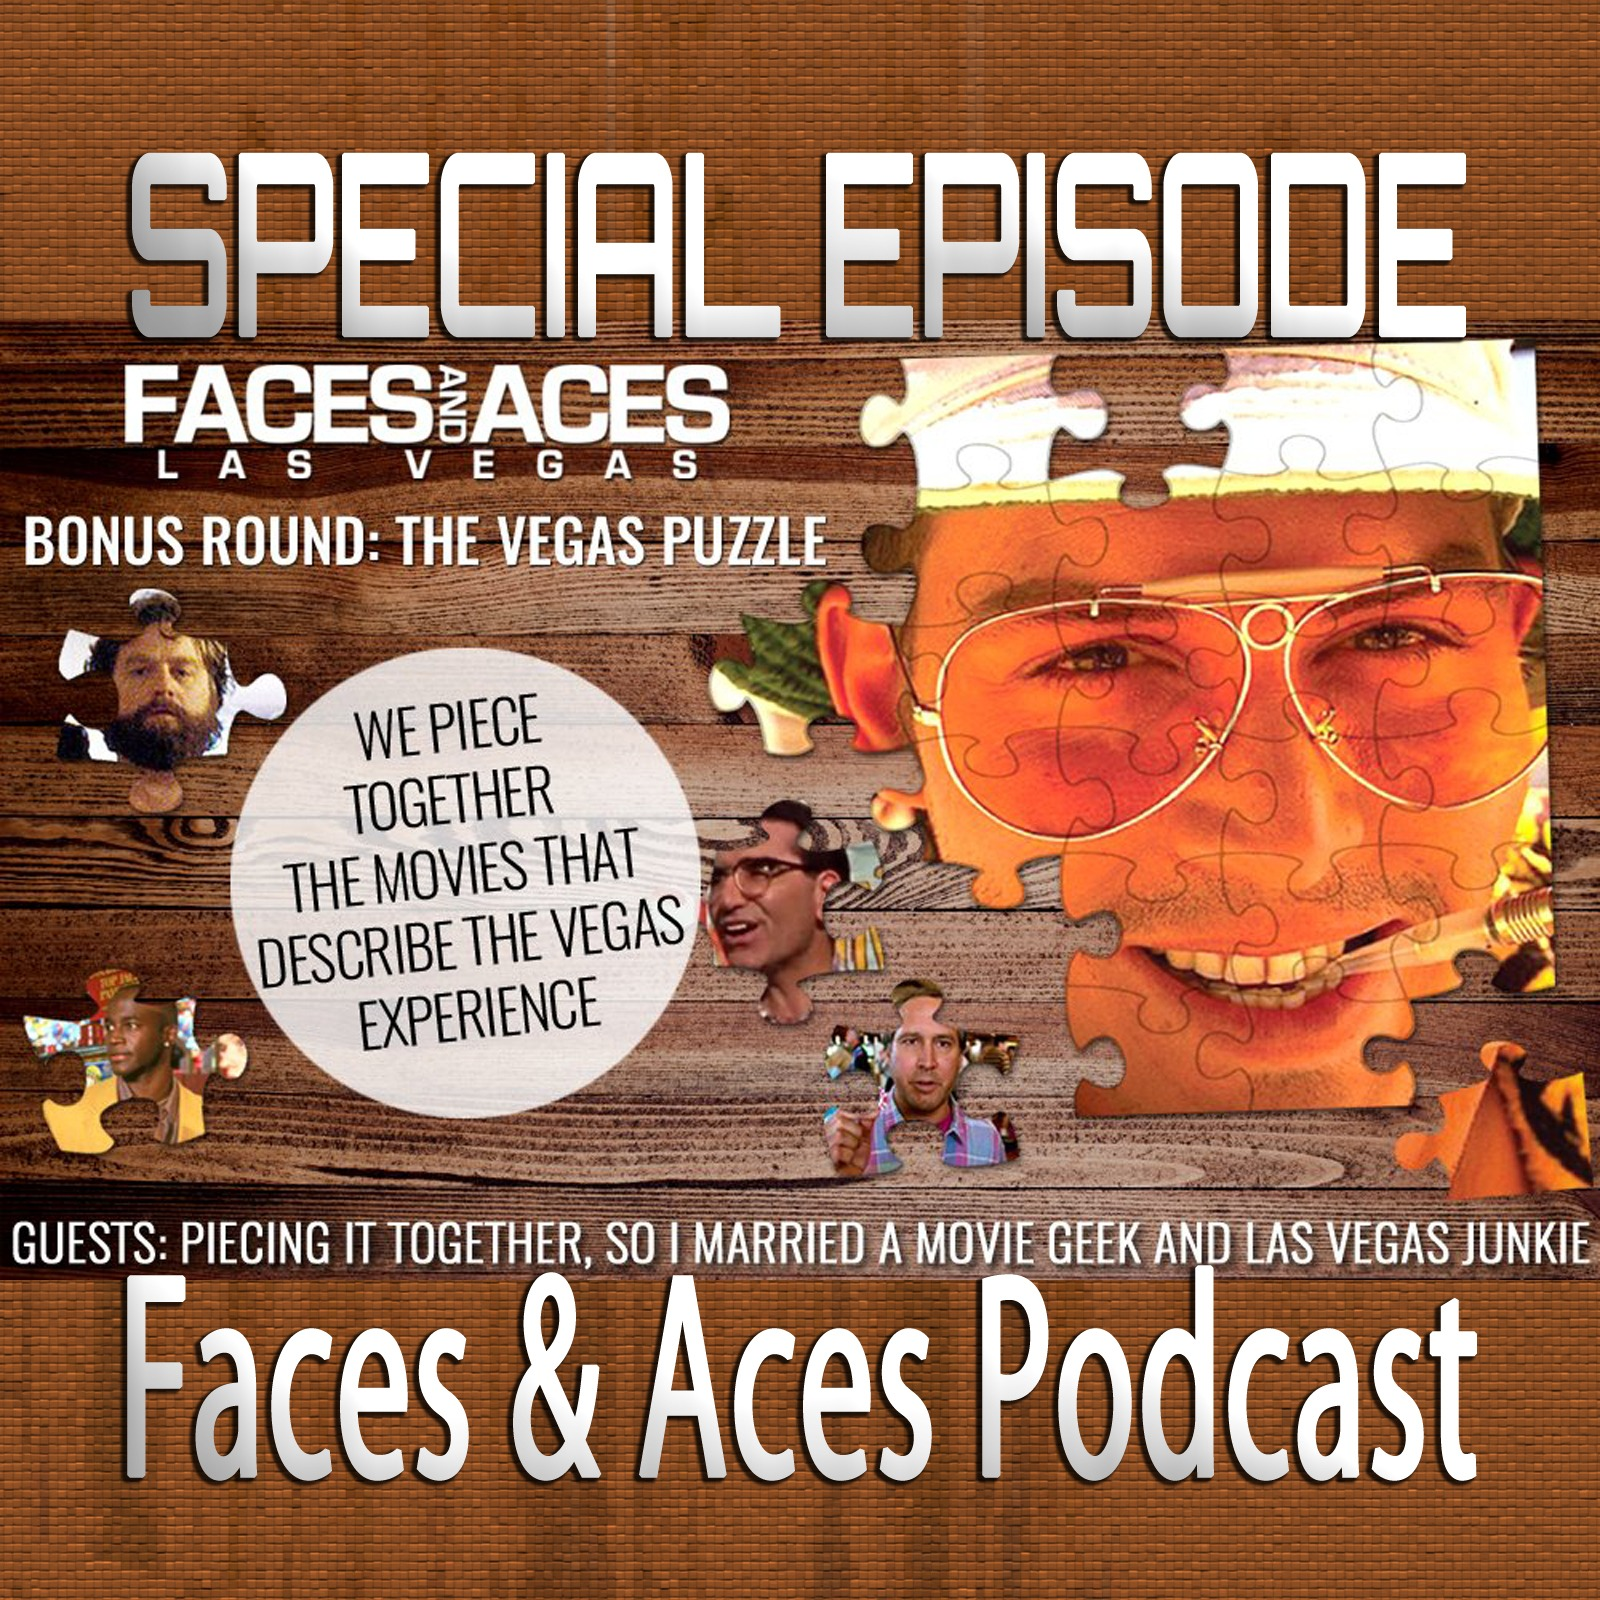 Faces & Aces – Las Vegas Piecing It Together (Special Episode)